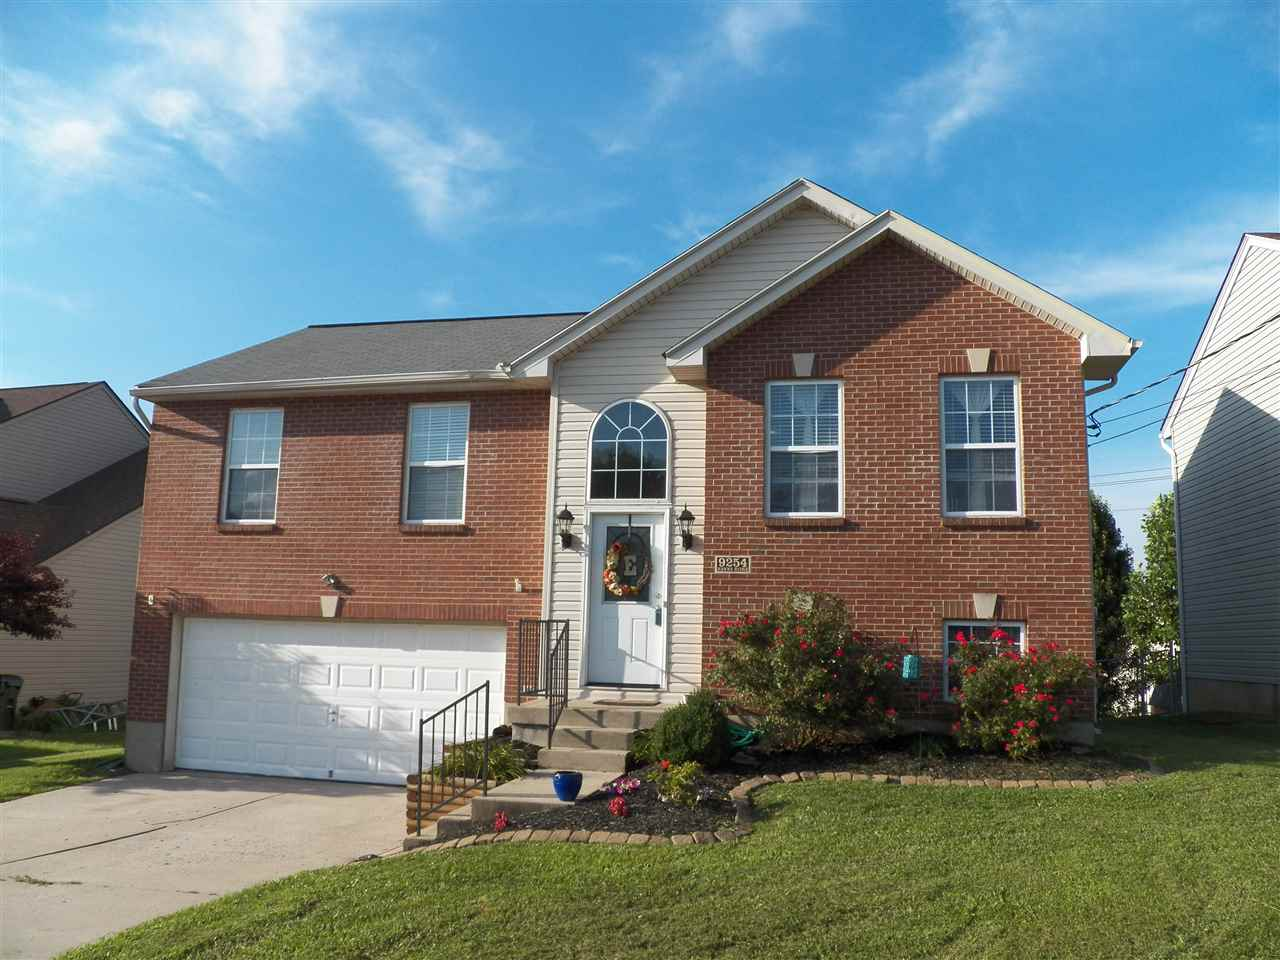 Photo 1 for 9254 Hawksridge Covington, KY 41017